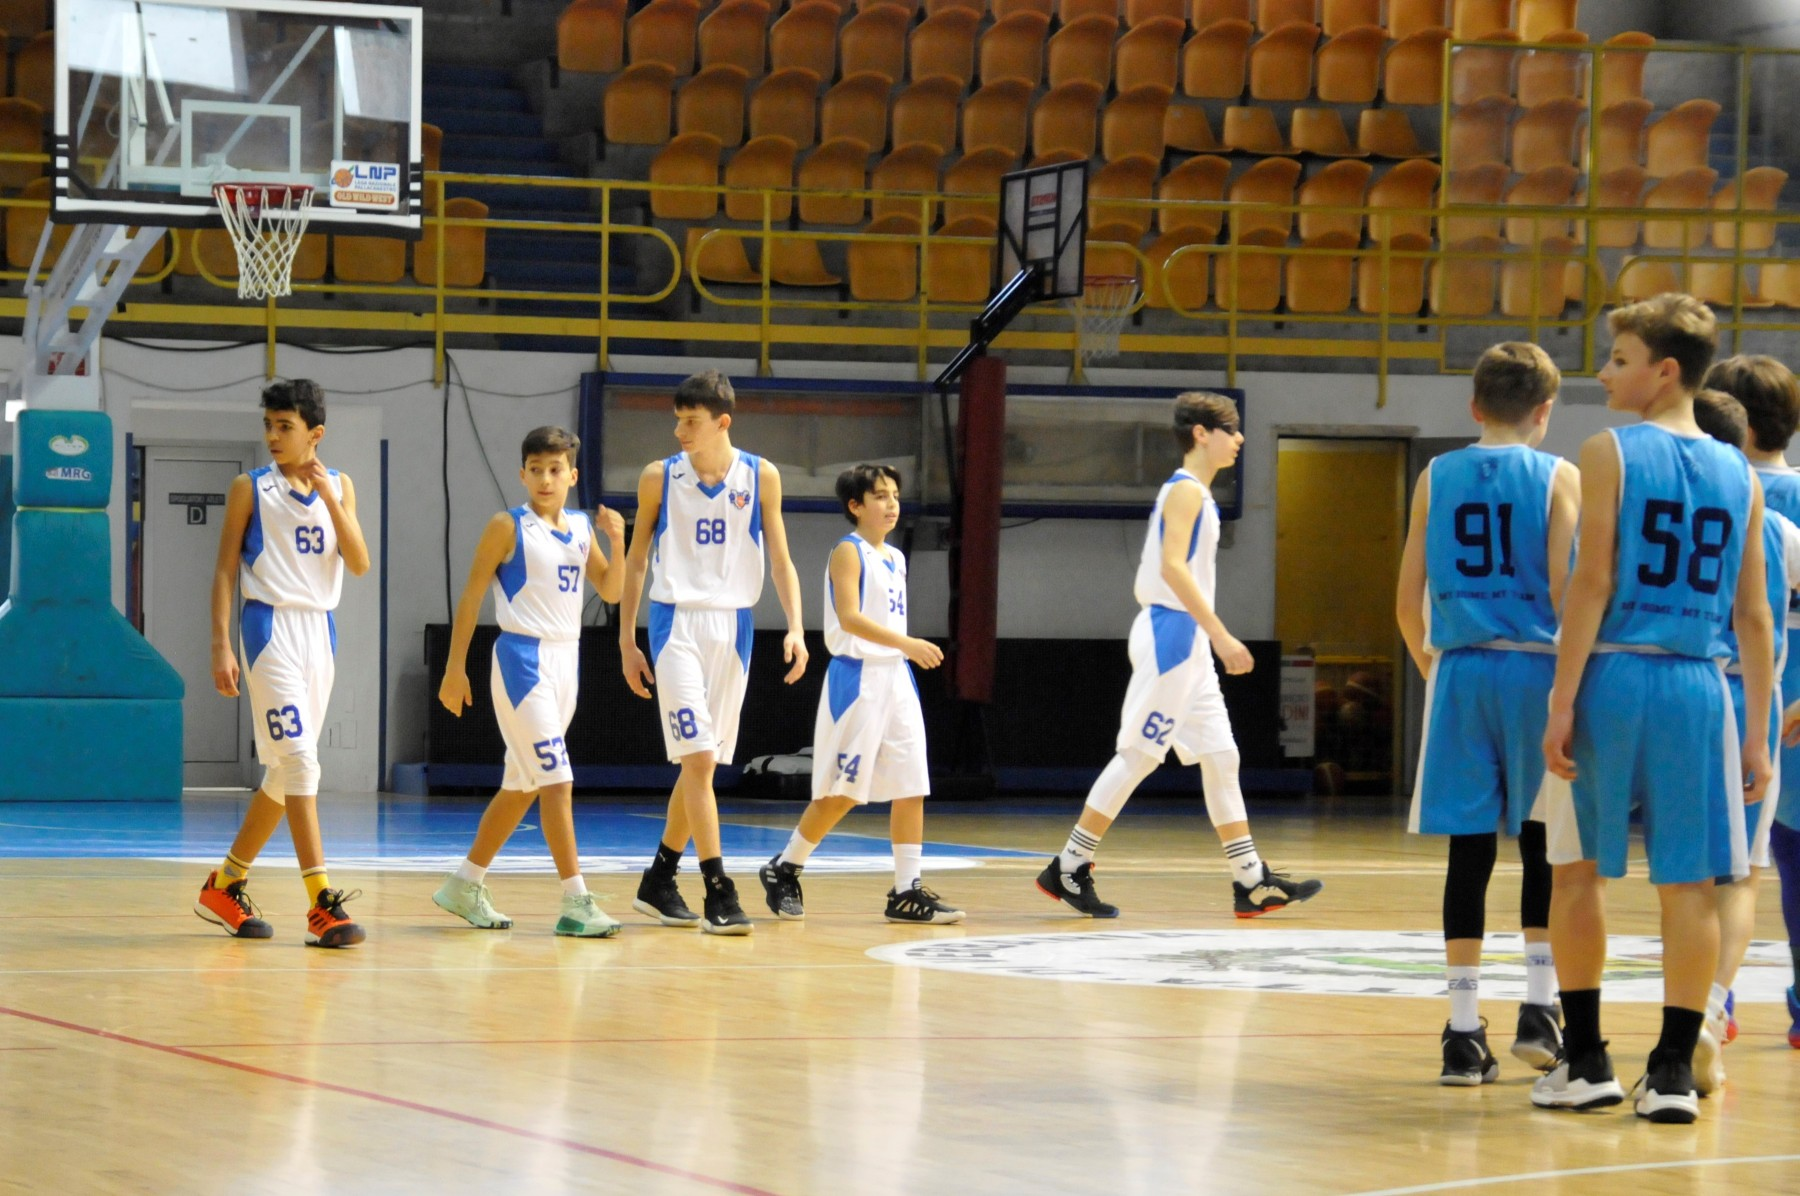 Virtus-College-U13-2020-01-25_032